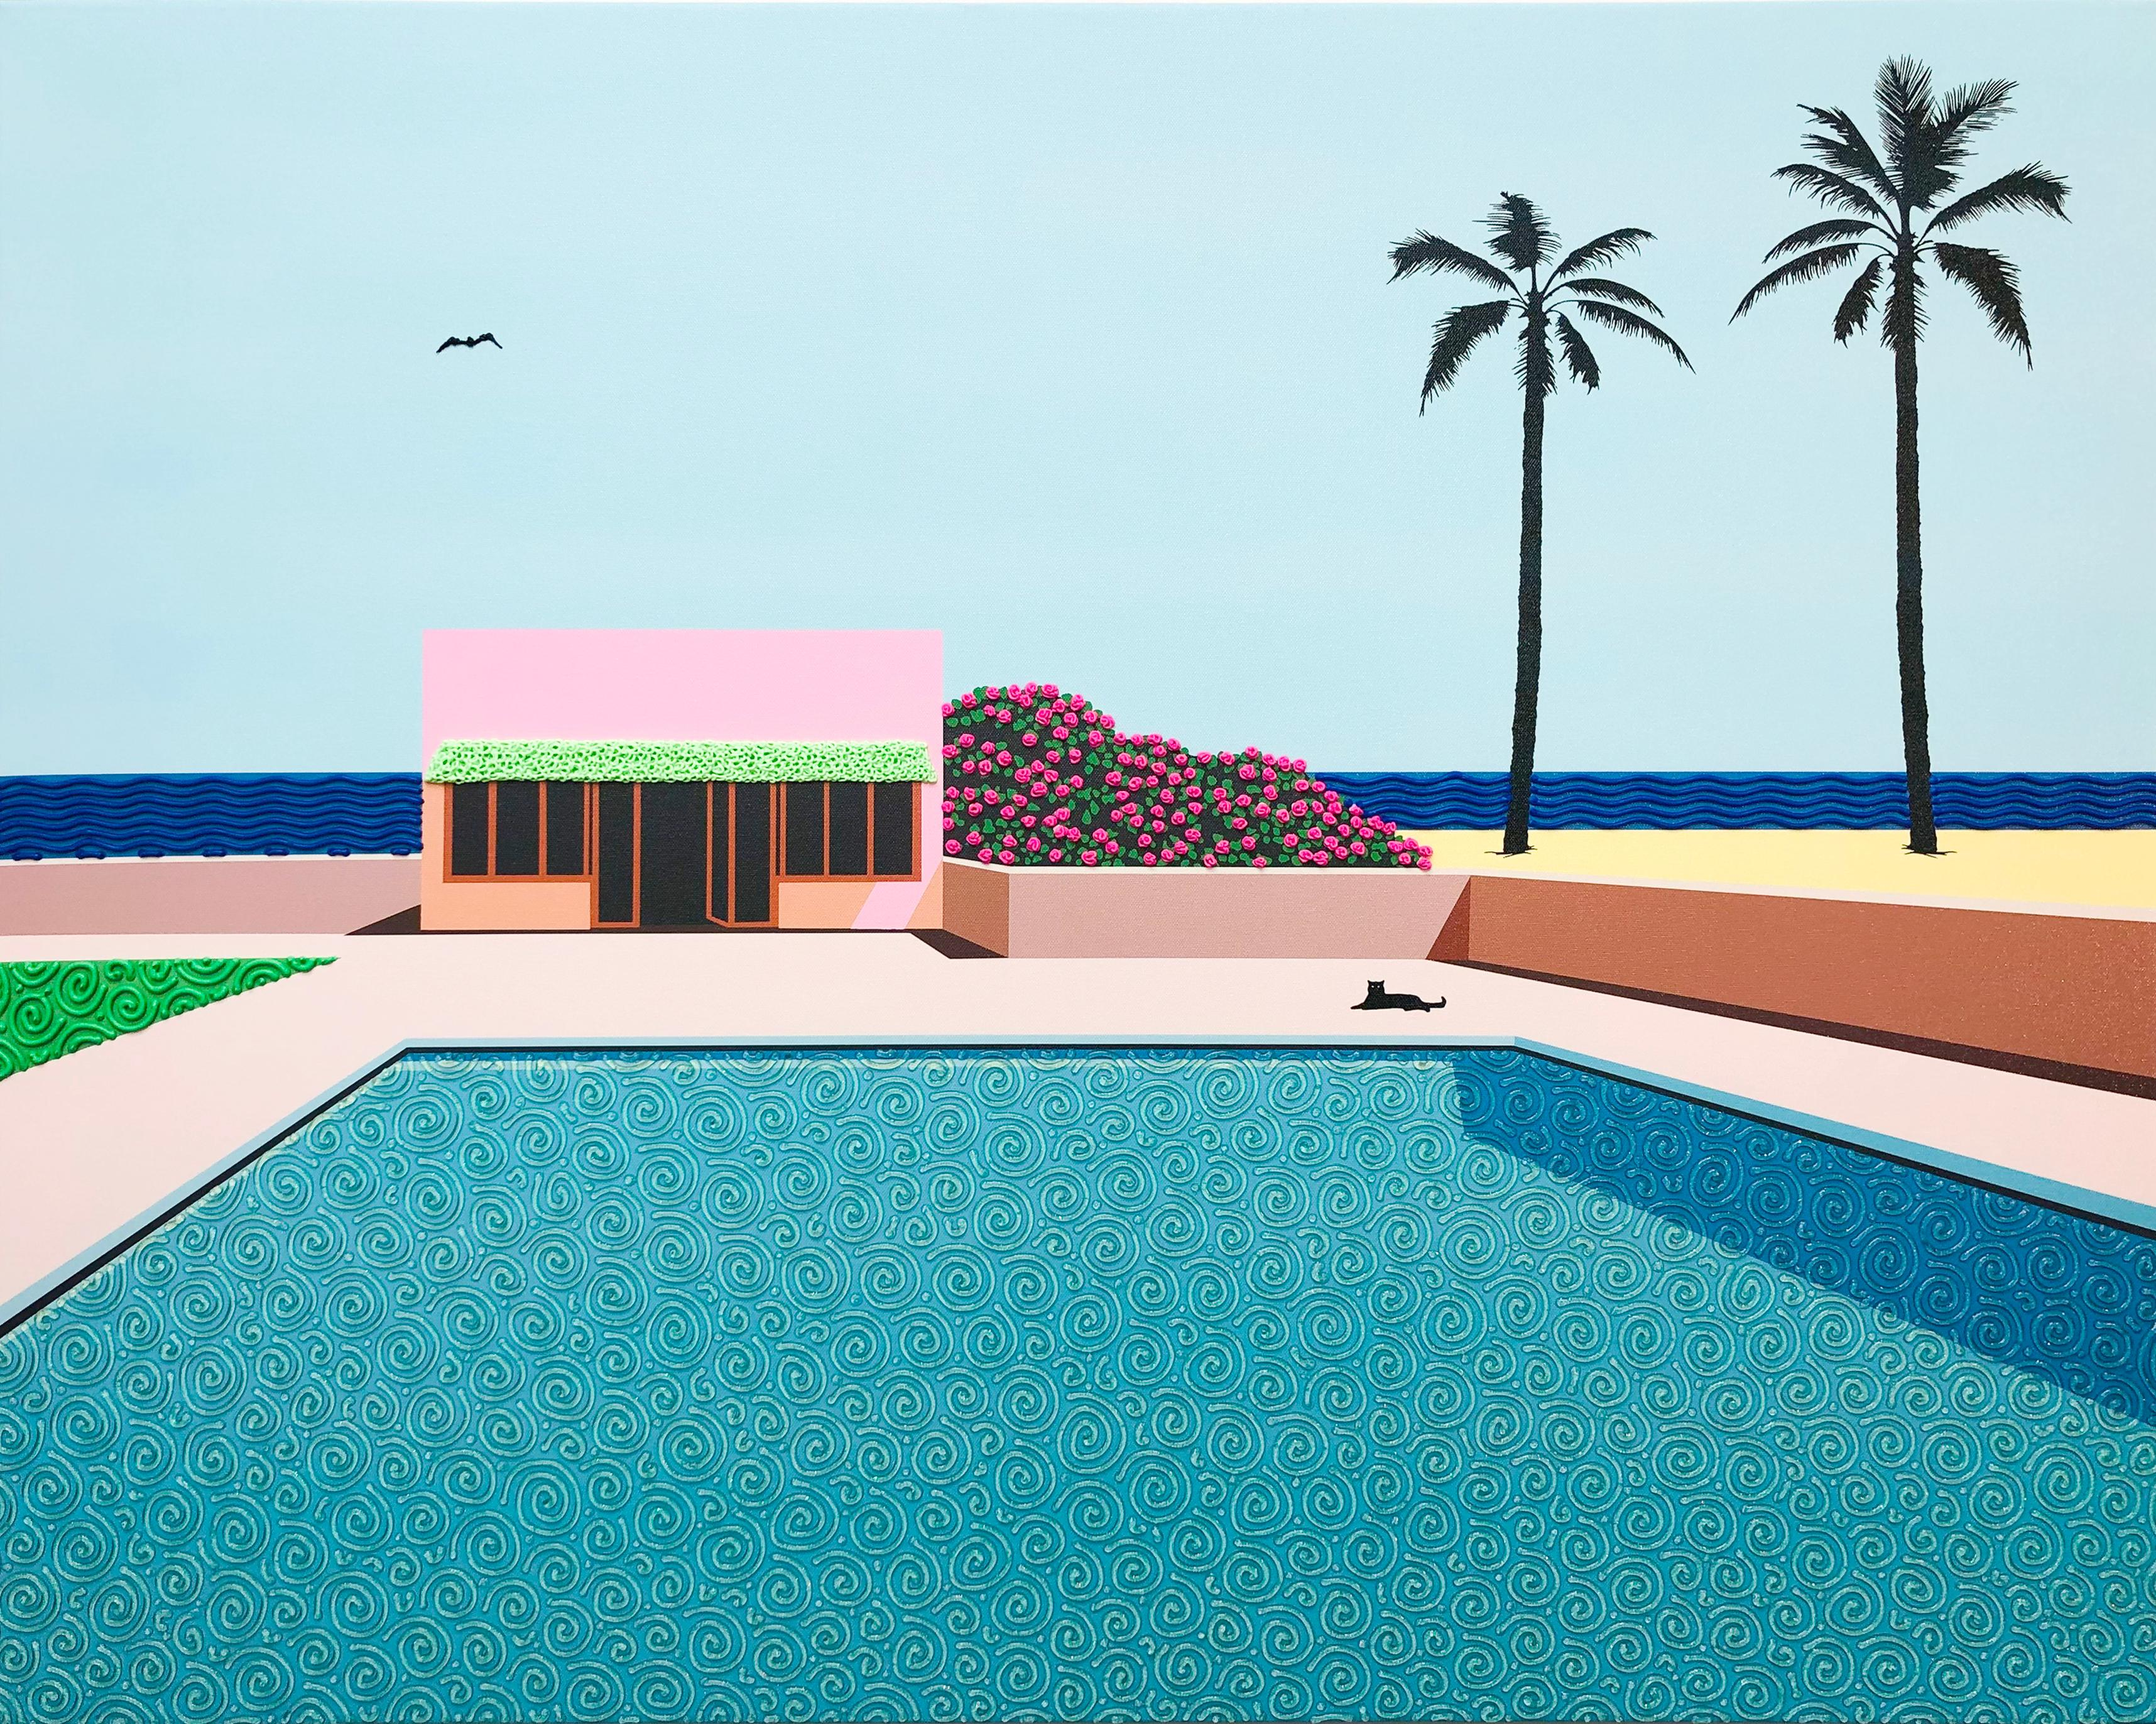 Bird over pink house - landscape painting